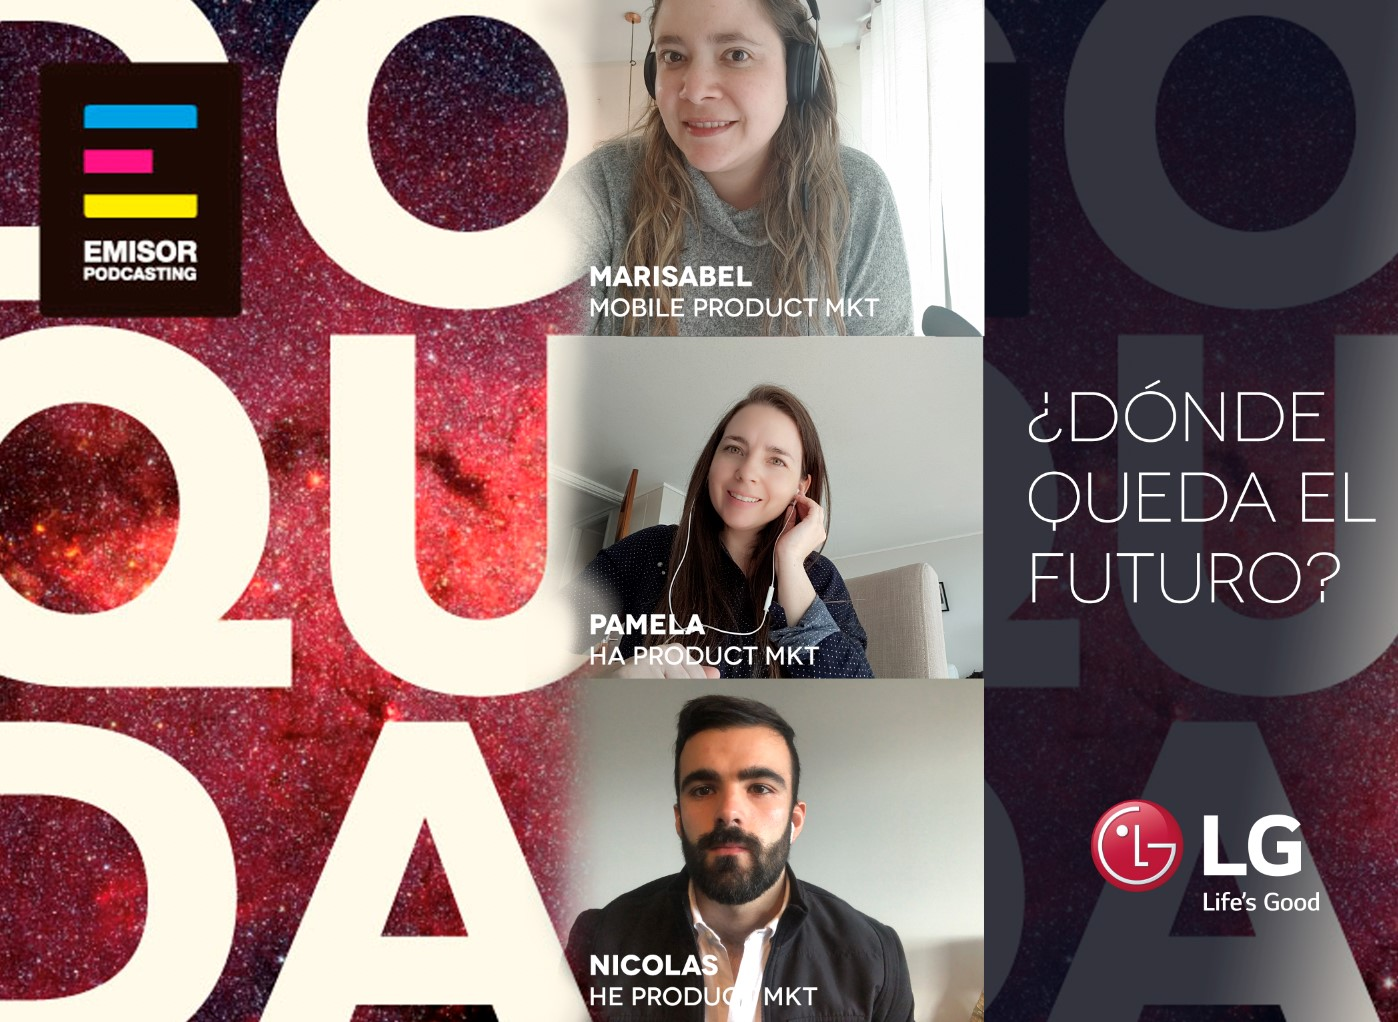 """A promotional image for LG's """"¿Dónde queda el futuro?"""" podcast introducing three of its hosts"""